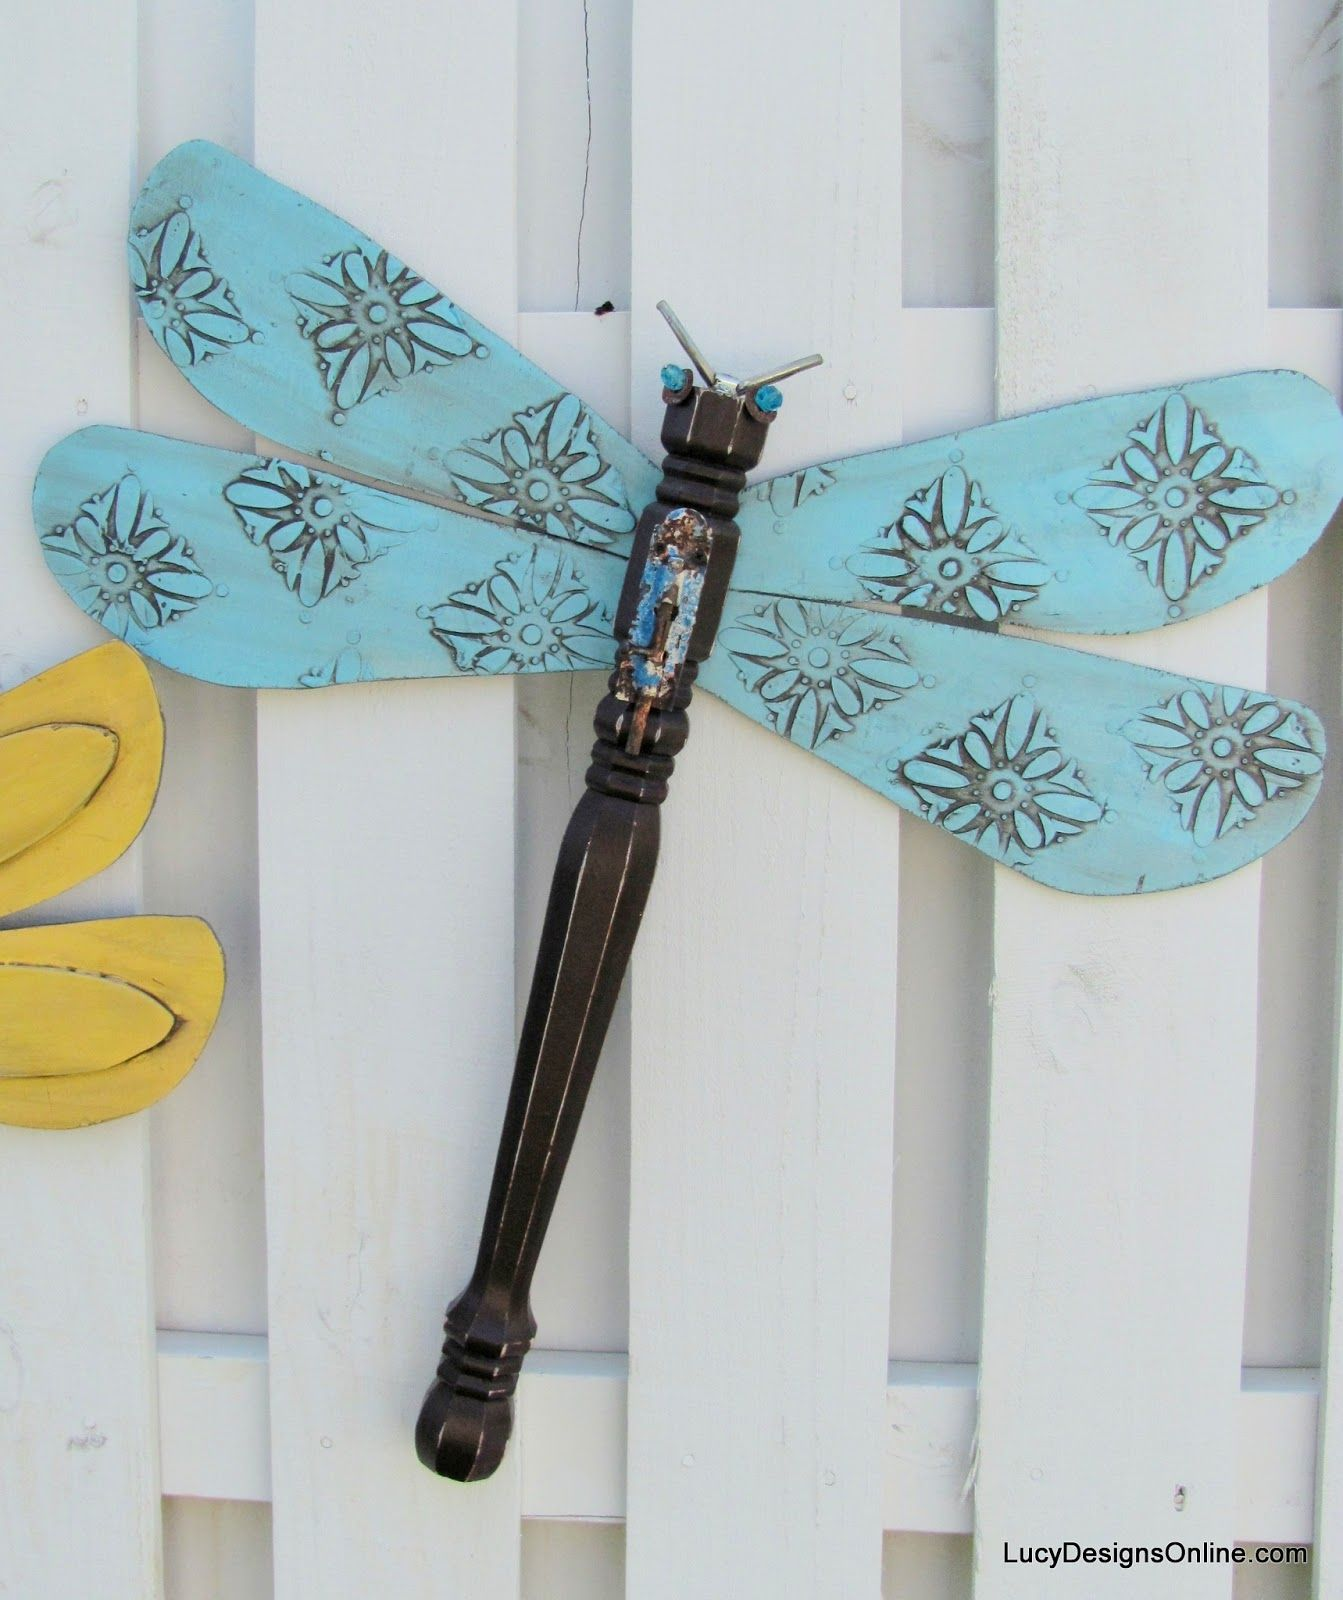 blue textured wing table leg dragonfly Made with fan blades and a ...